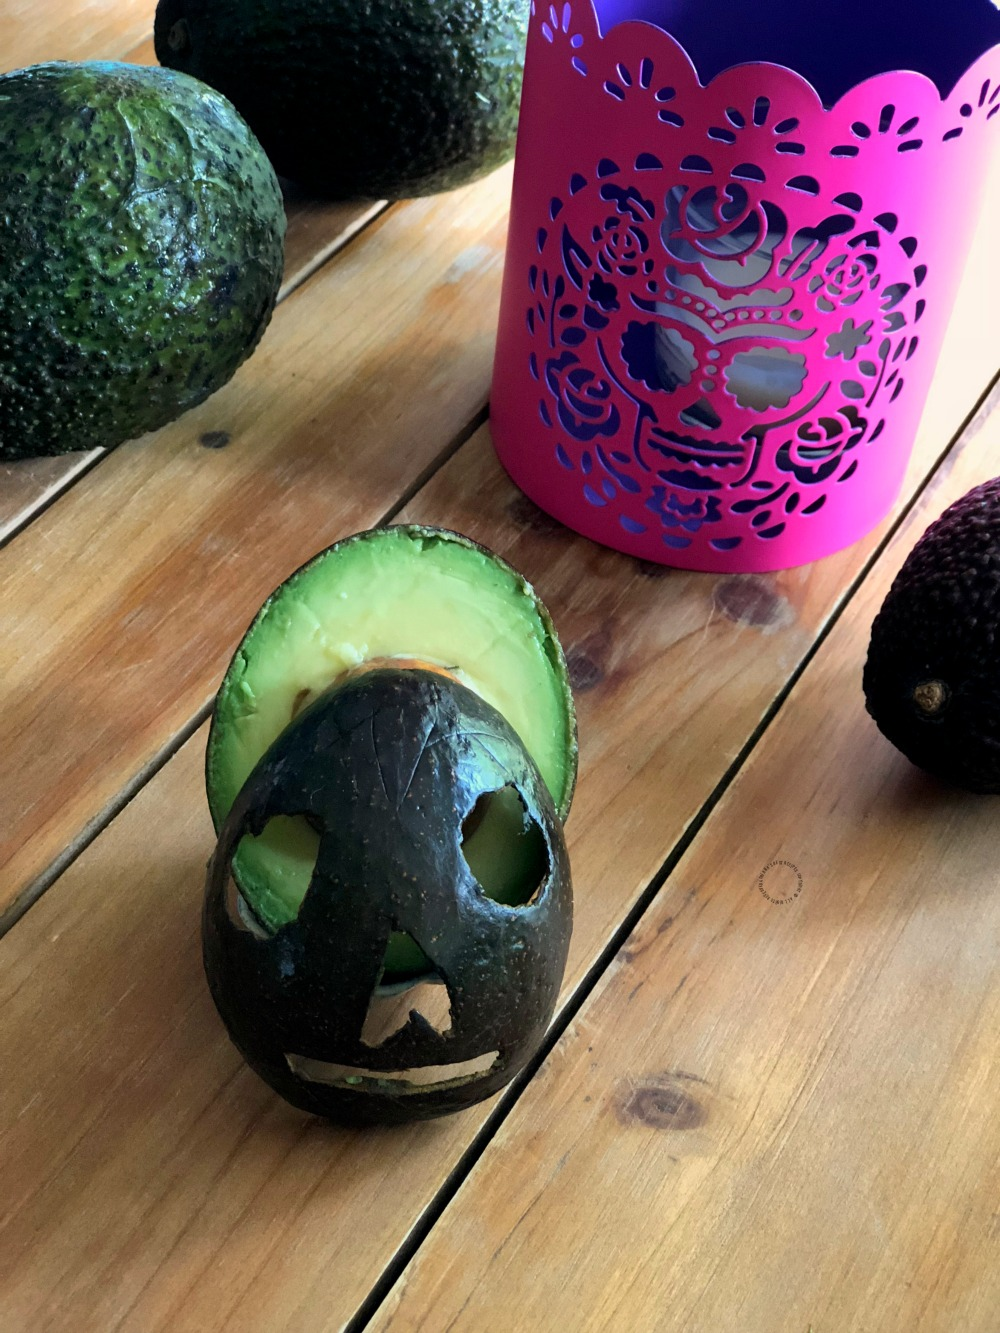 Choose a firm avocado for making the avocado skull